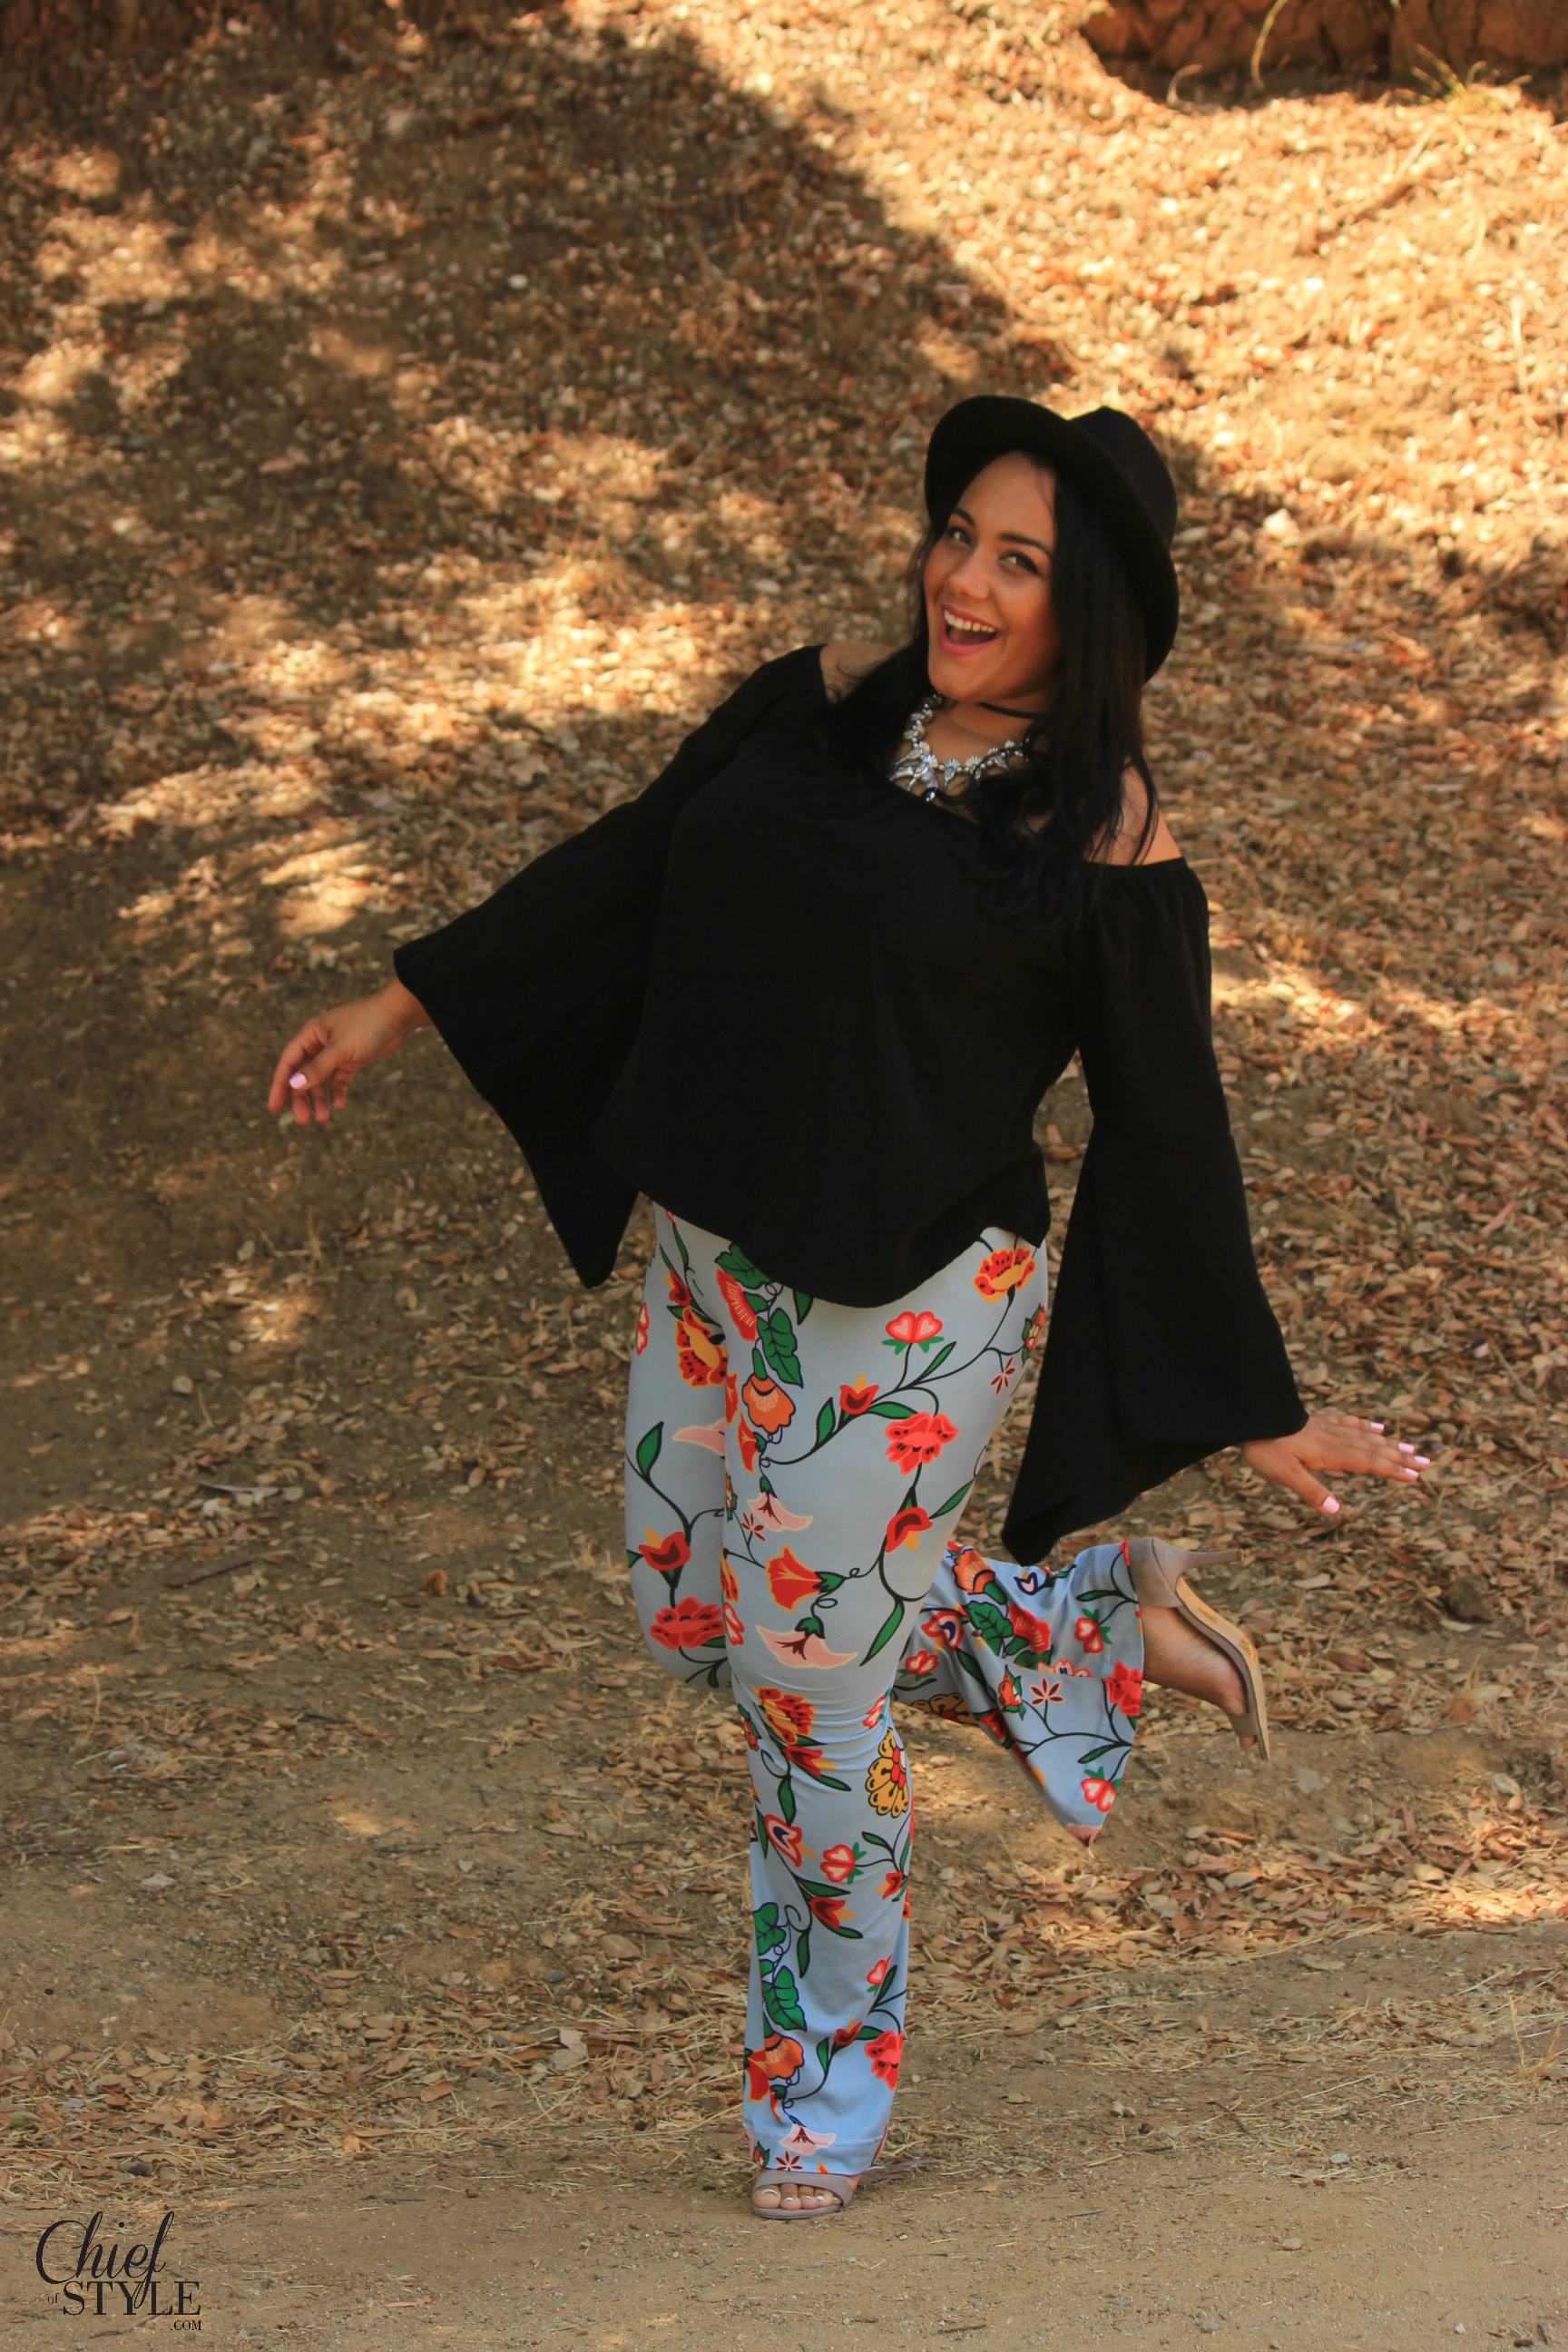 OOTD: B.Yellowtail by Native American Fashion Designer Bethany Yellowtail